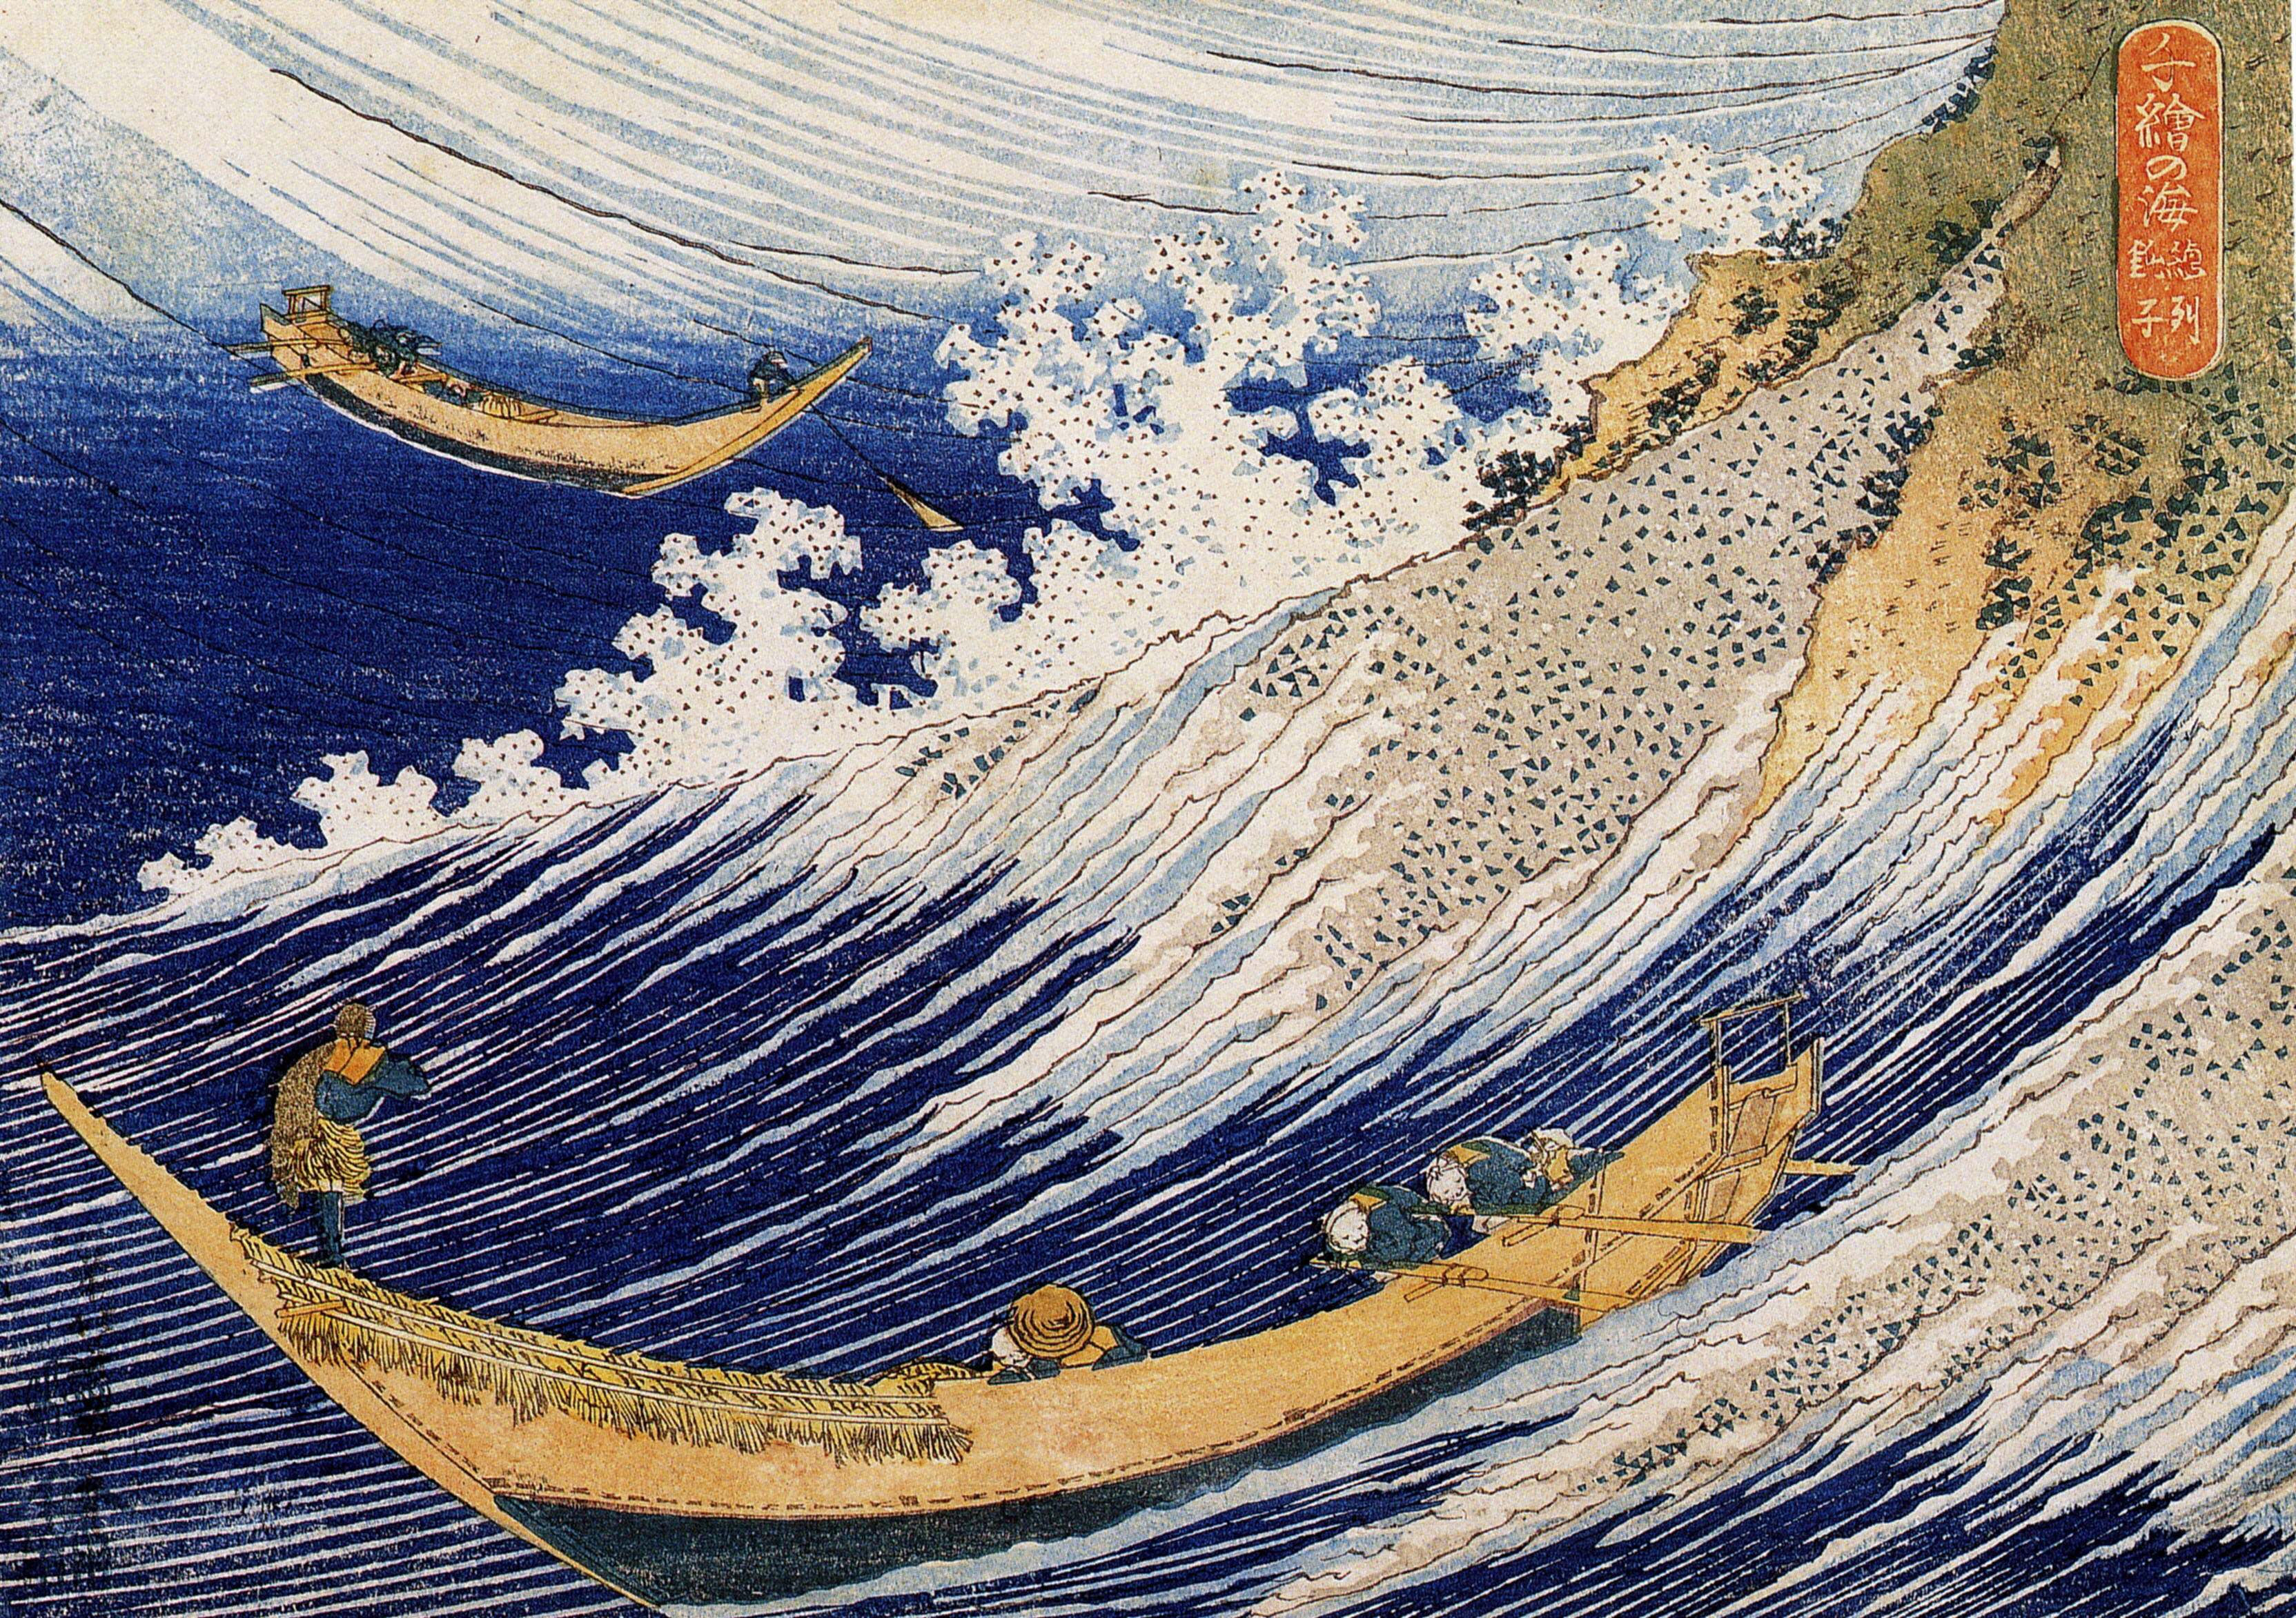 Searching Wallpapers By The Great Wave Off Kanagawa Term